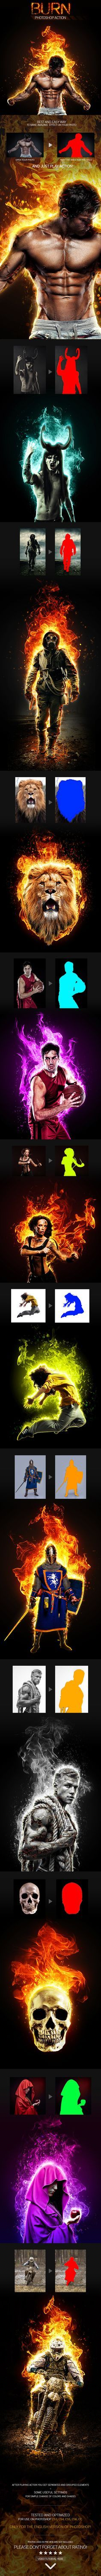 Burn Photoshop Action #action #fire Download: http://graphicriver.net/item/burn-photoshop-action/11462943?ref=nexion